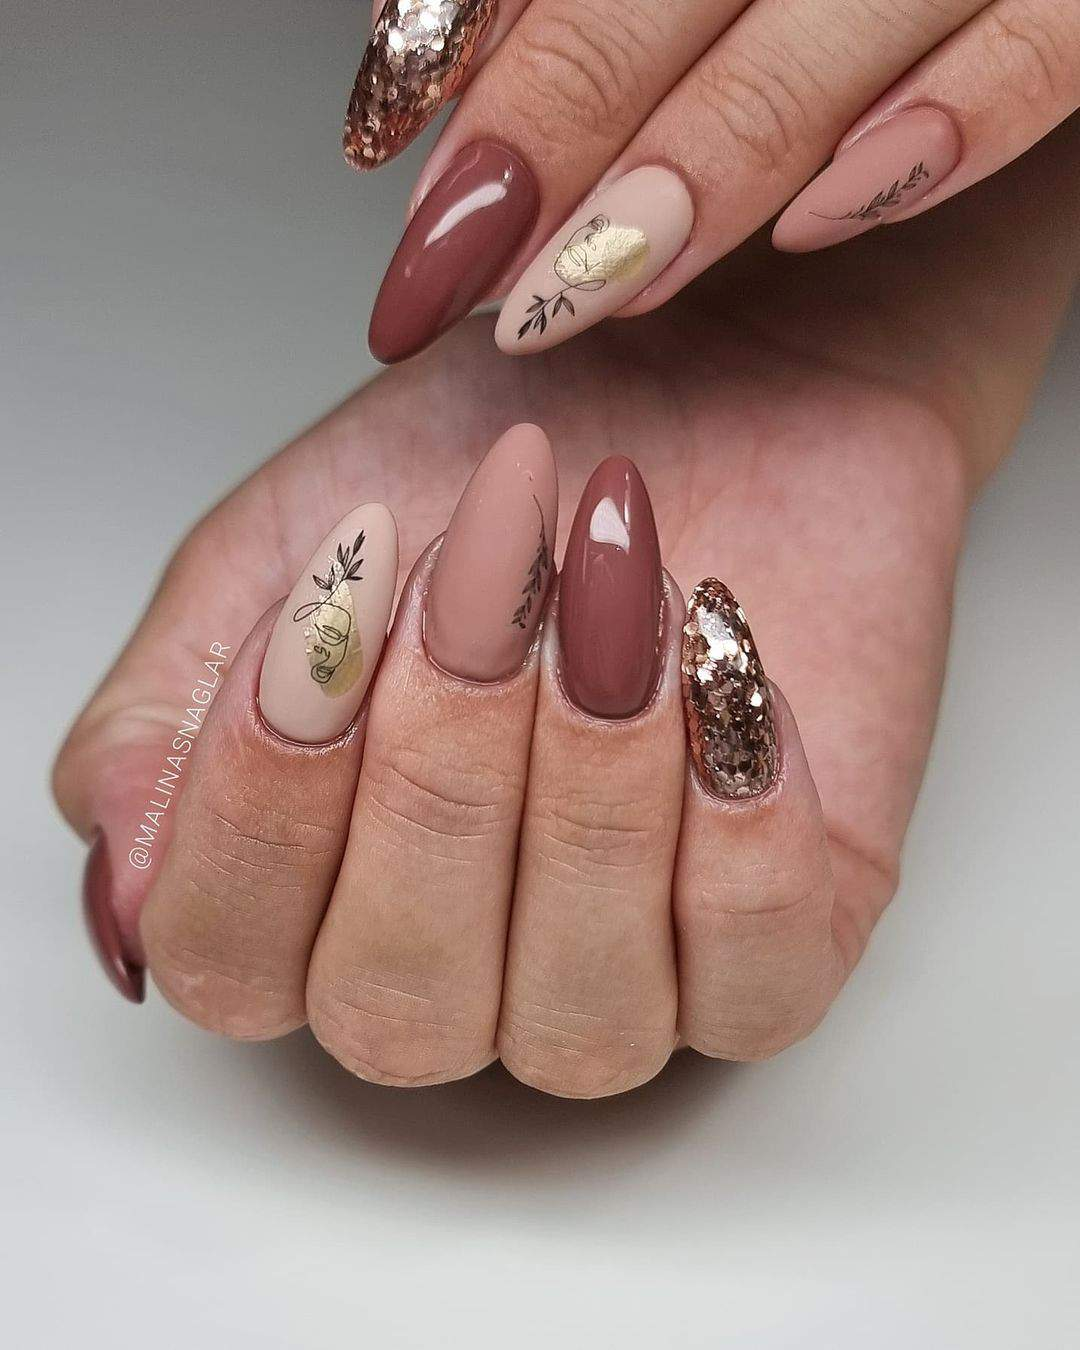 The 100+ Best Nail Designs Trends And Ideas In 2021 images 83